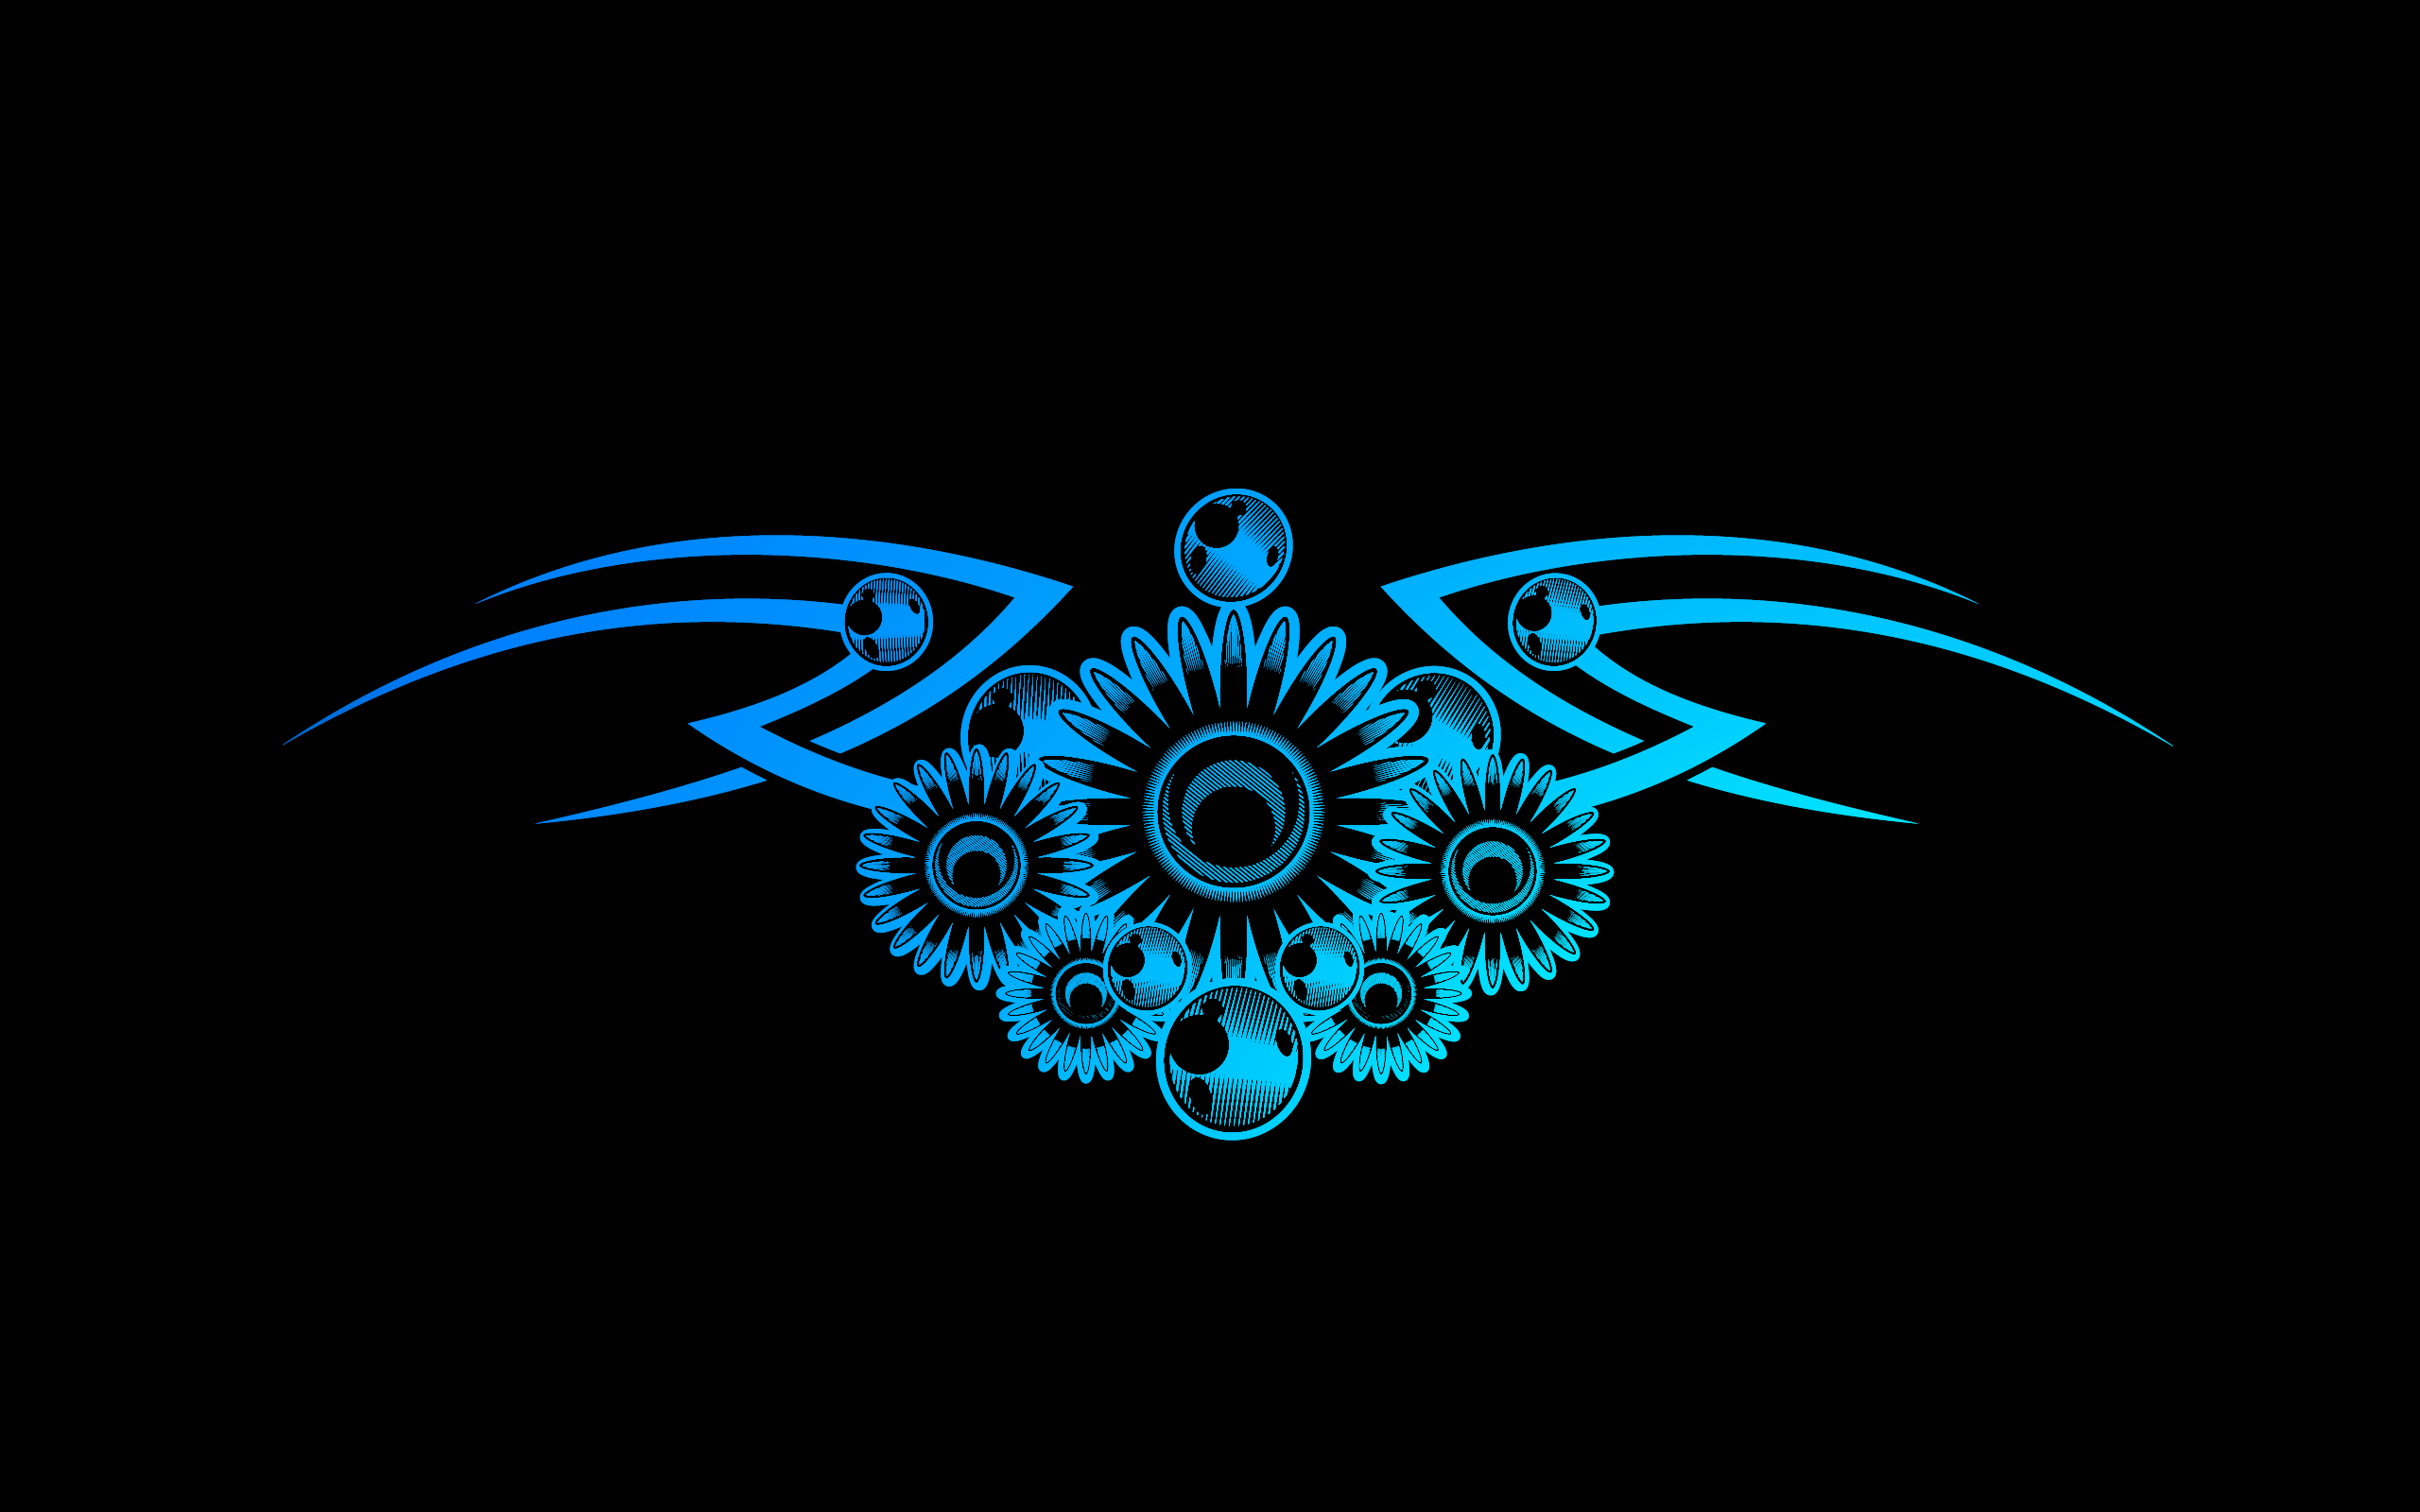 Tribal Tattoo 2 Wallpaper By Jeshans On Deviantart